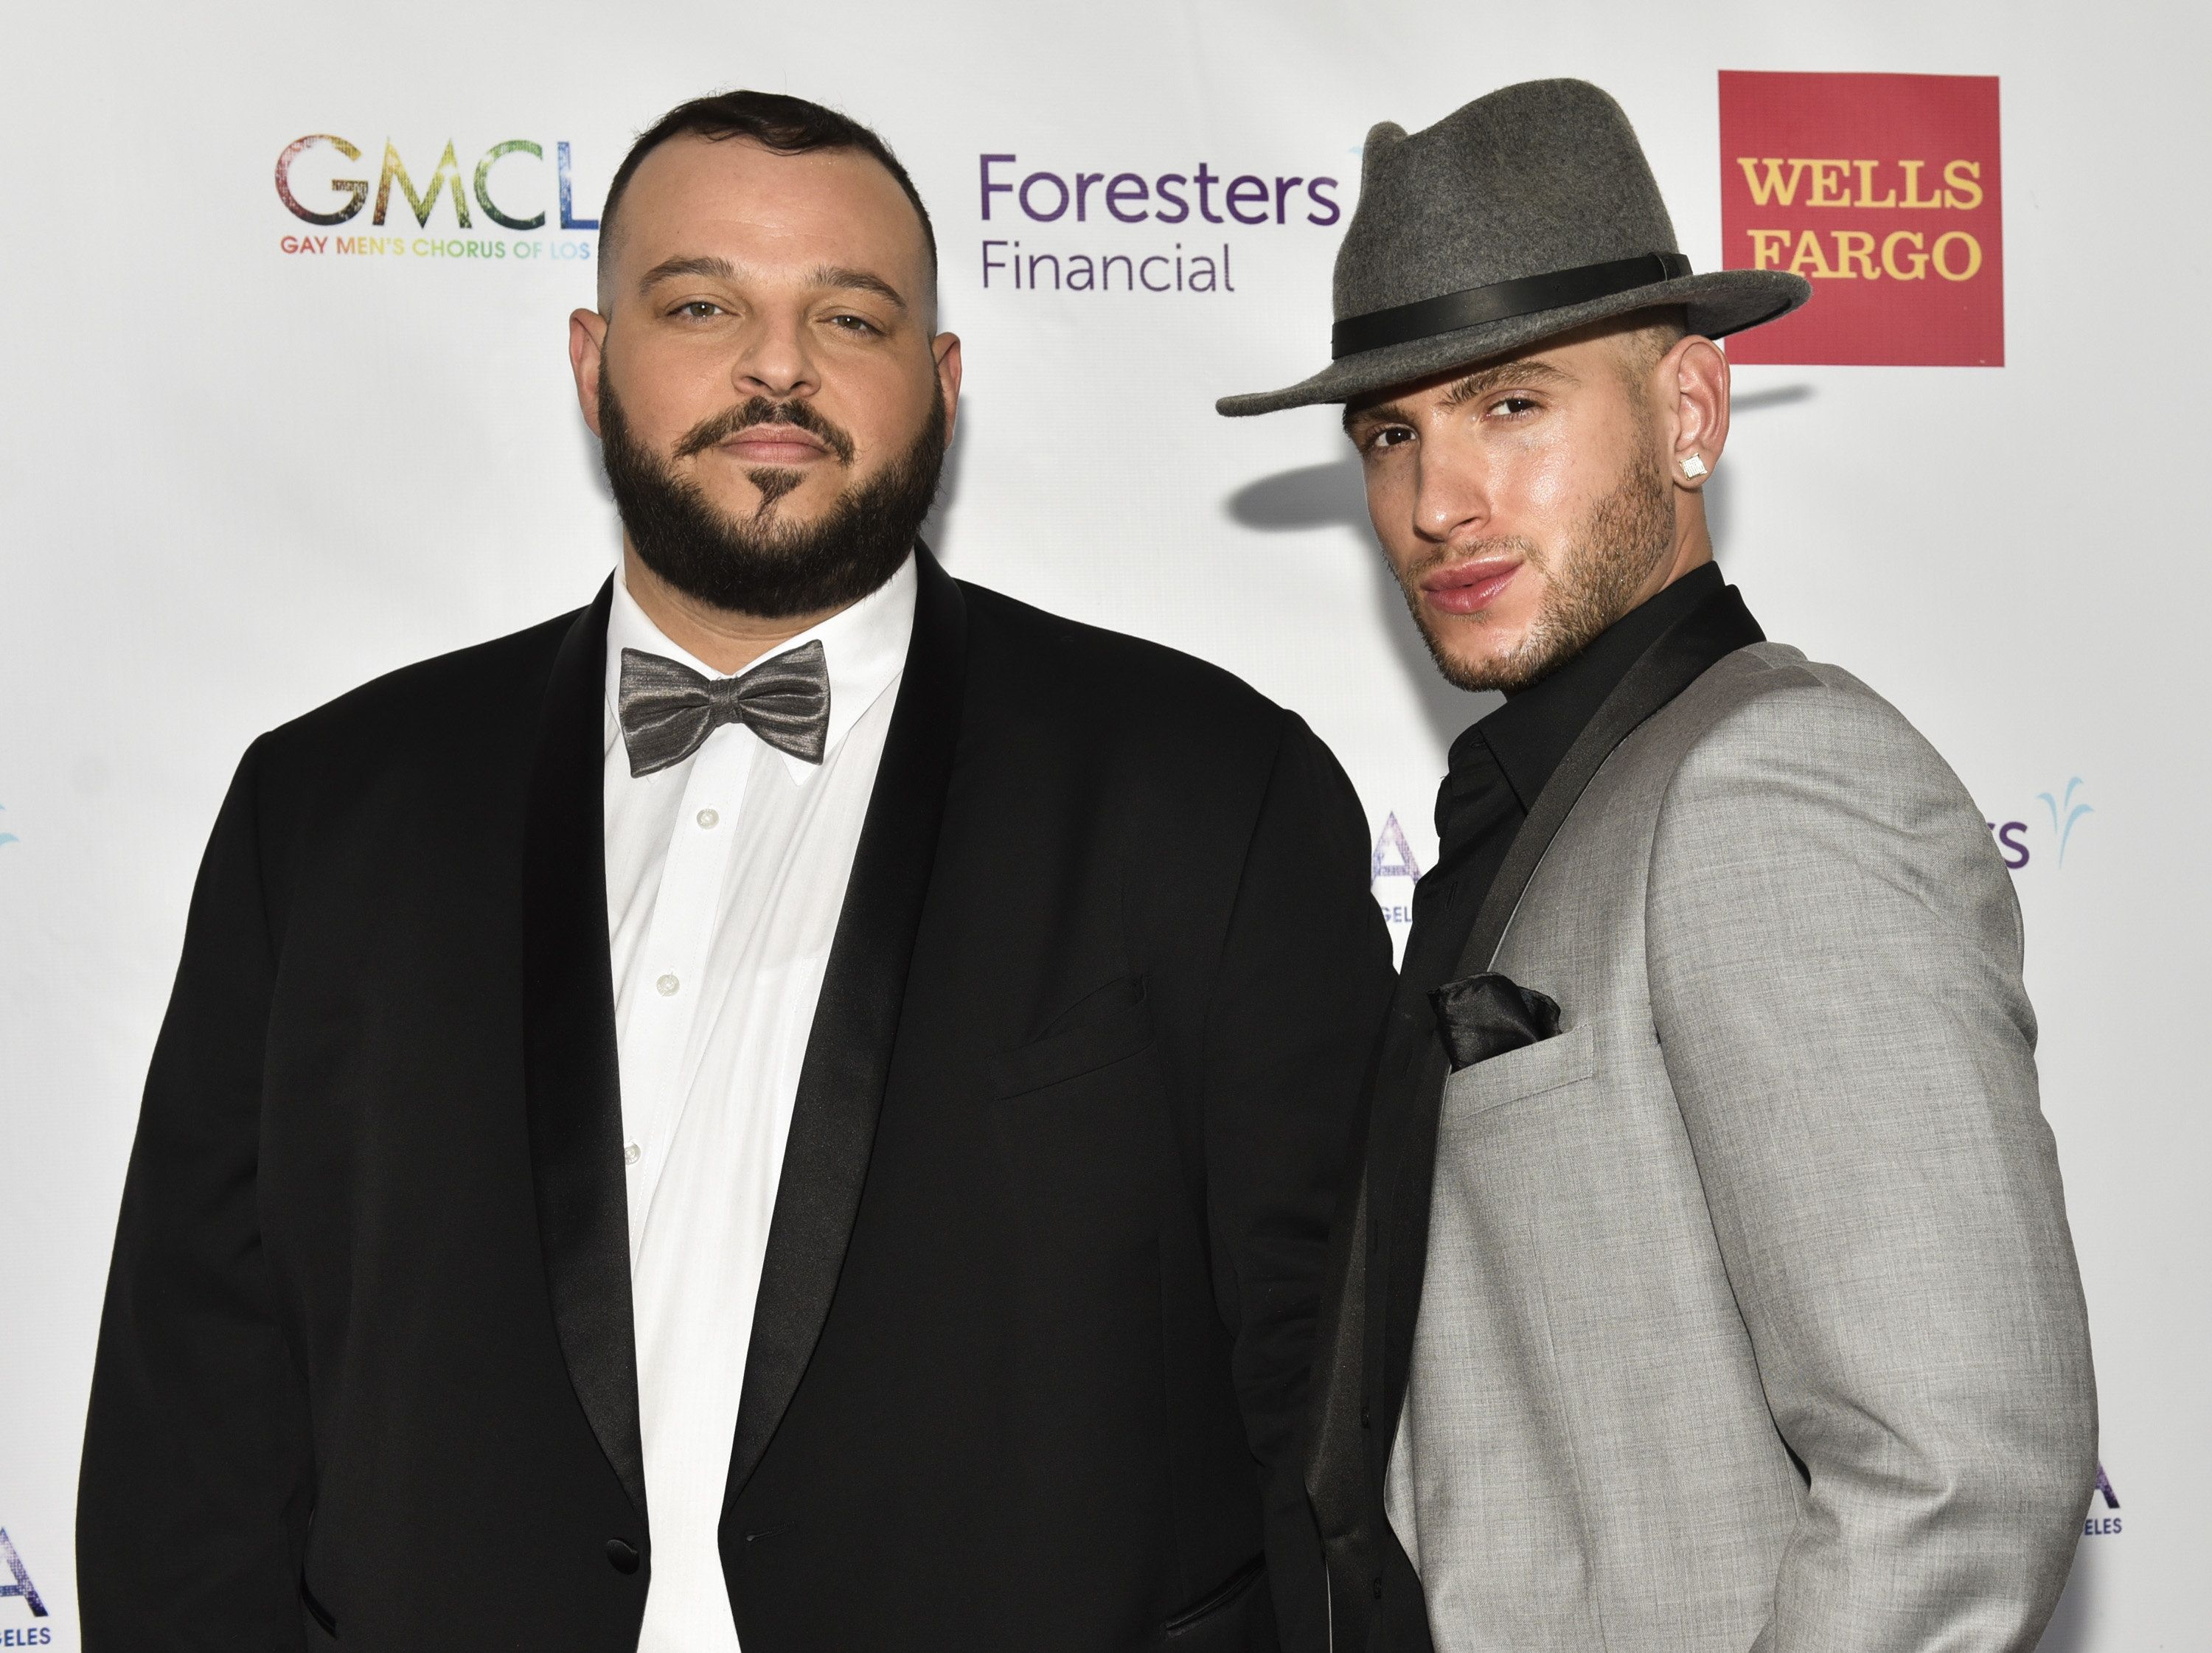 LOS ANGELES, CA - MAY 20:  Actor Daniel Franzese (L) and fiance attend the Gay Men's Chorus of Los Angeles 6th Annual Voice Awards at JW Marriott Los Angeles at L.A. LIVE on May 20, 2017 in Los Angeles, California.  (Photo by Rodin Eckenroth/FilmMagic)